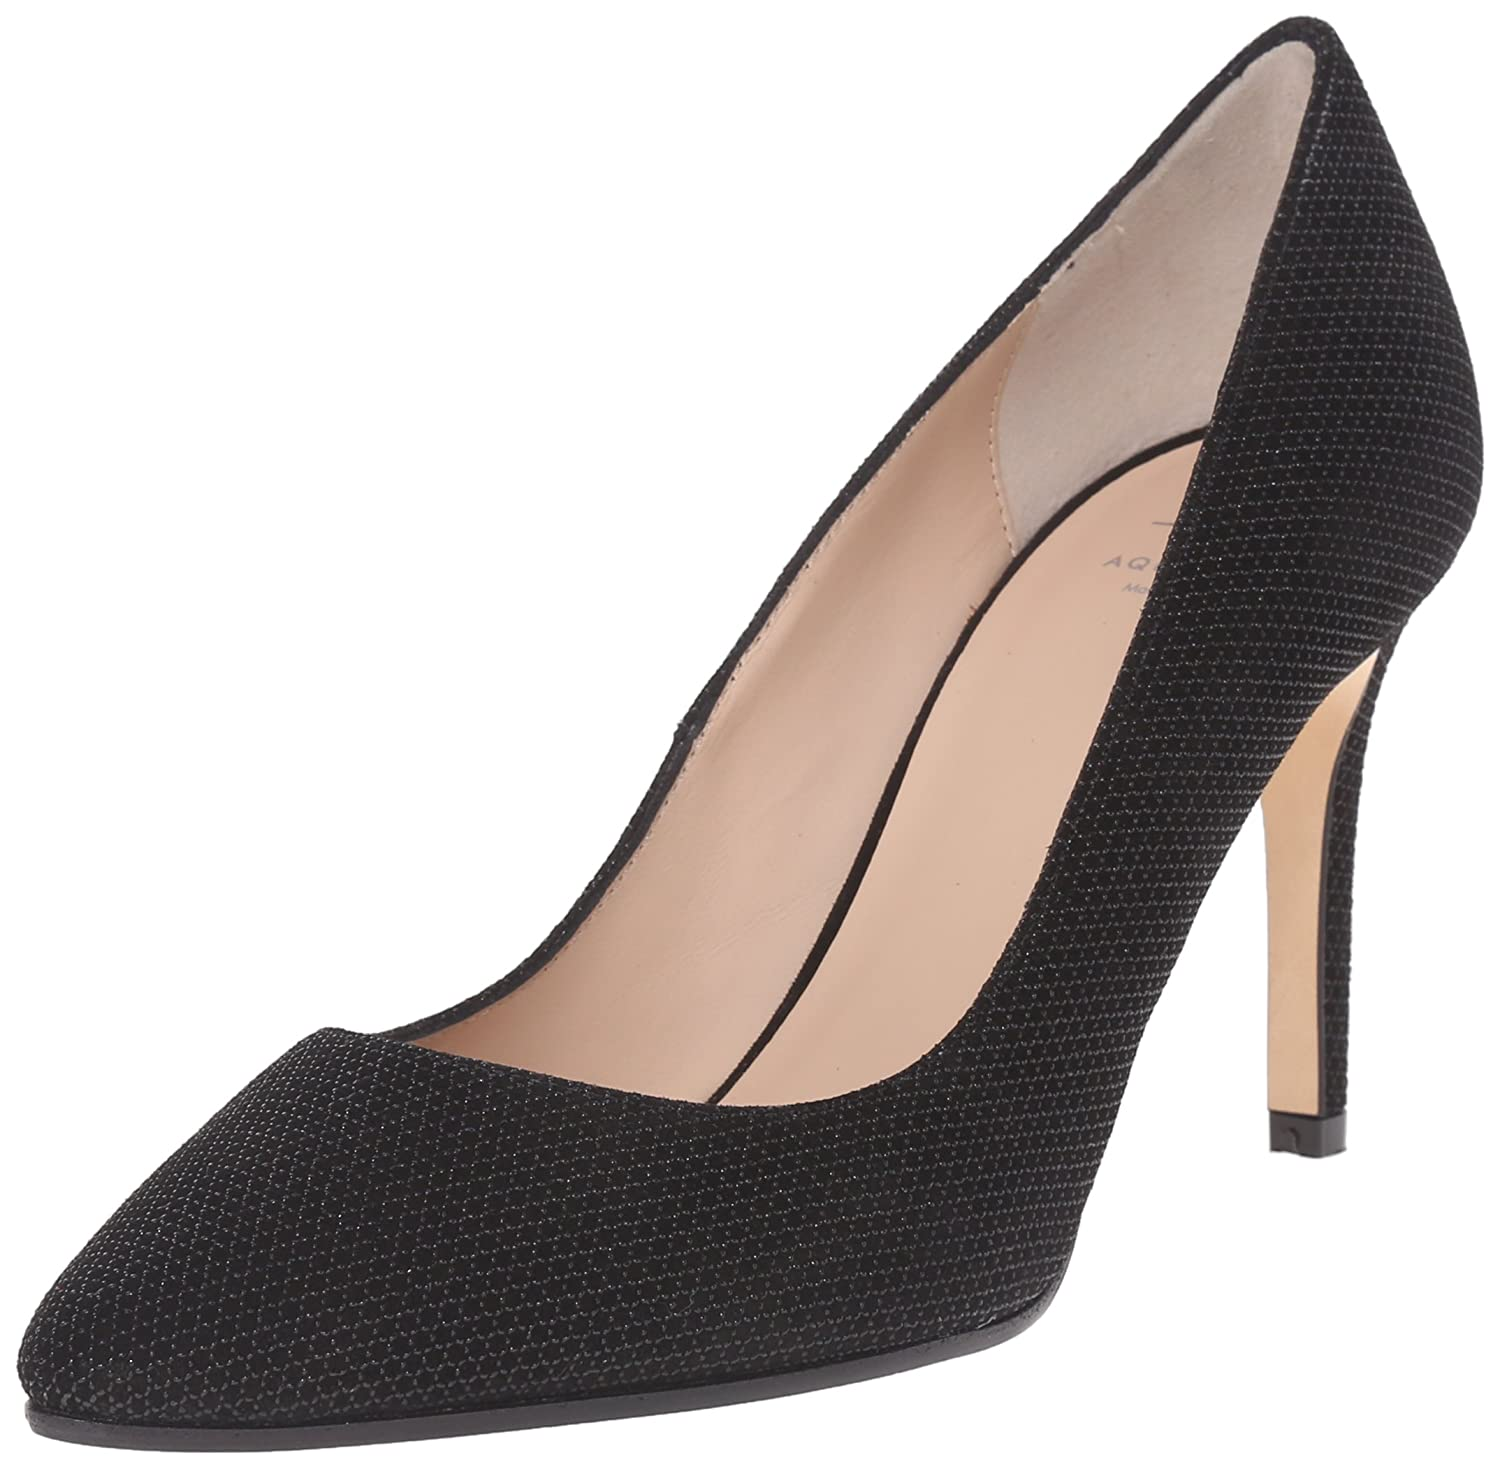 Aquatalia Women's Harlee Diamond Suede Dress Pump